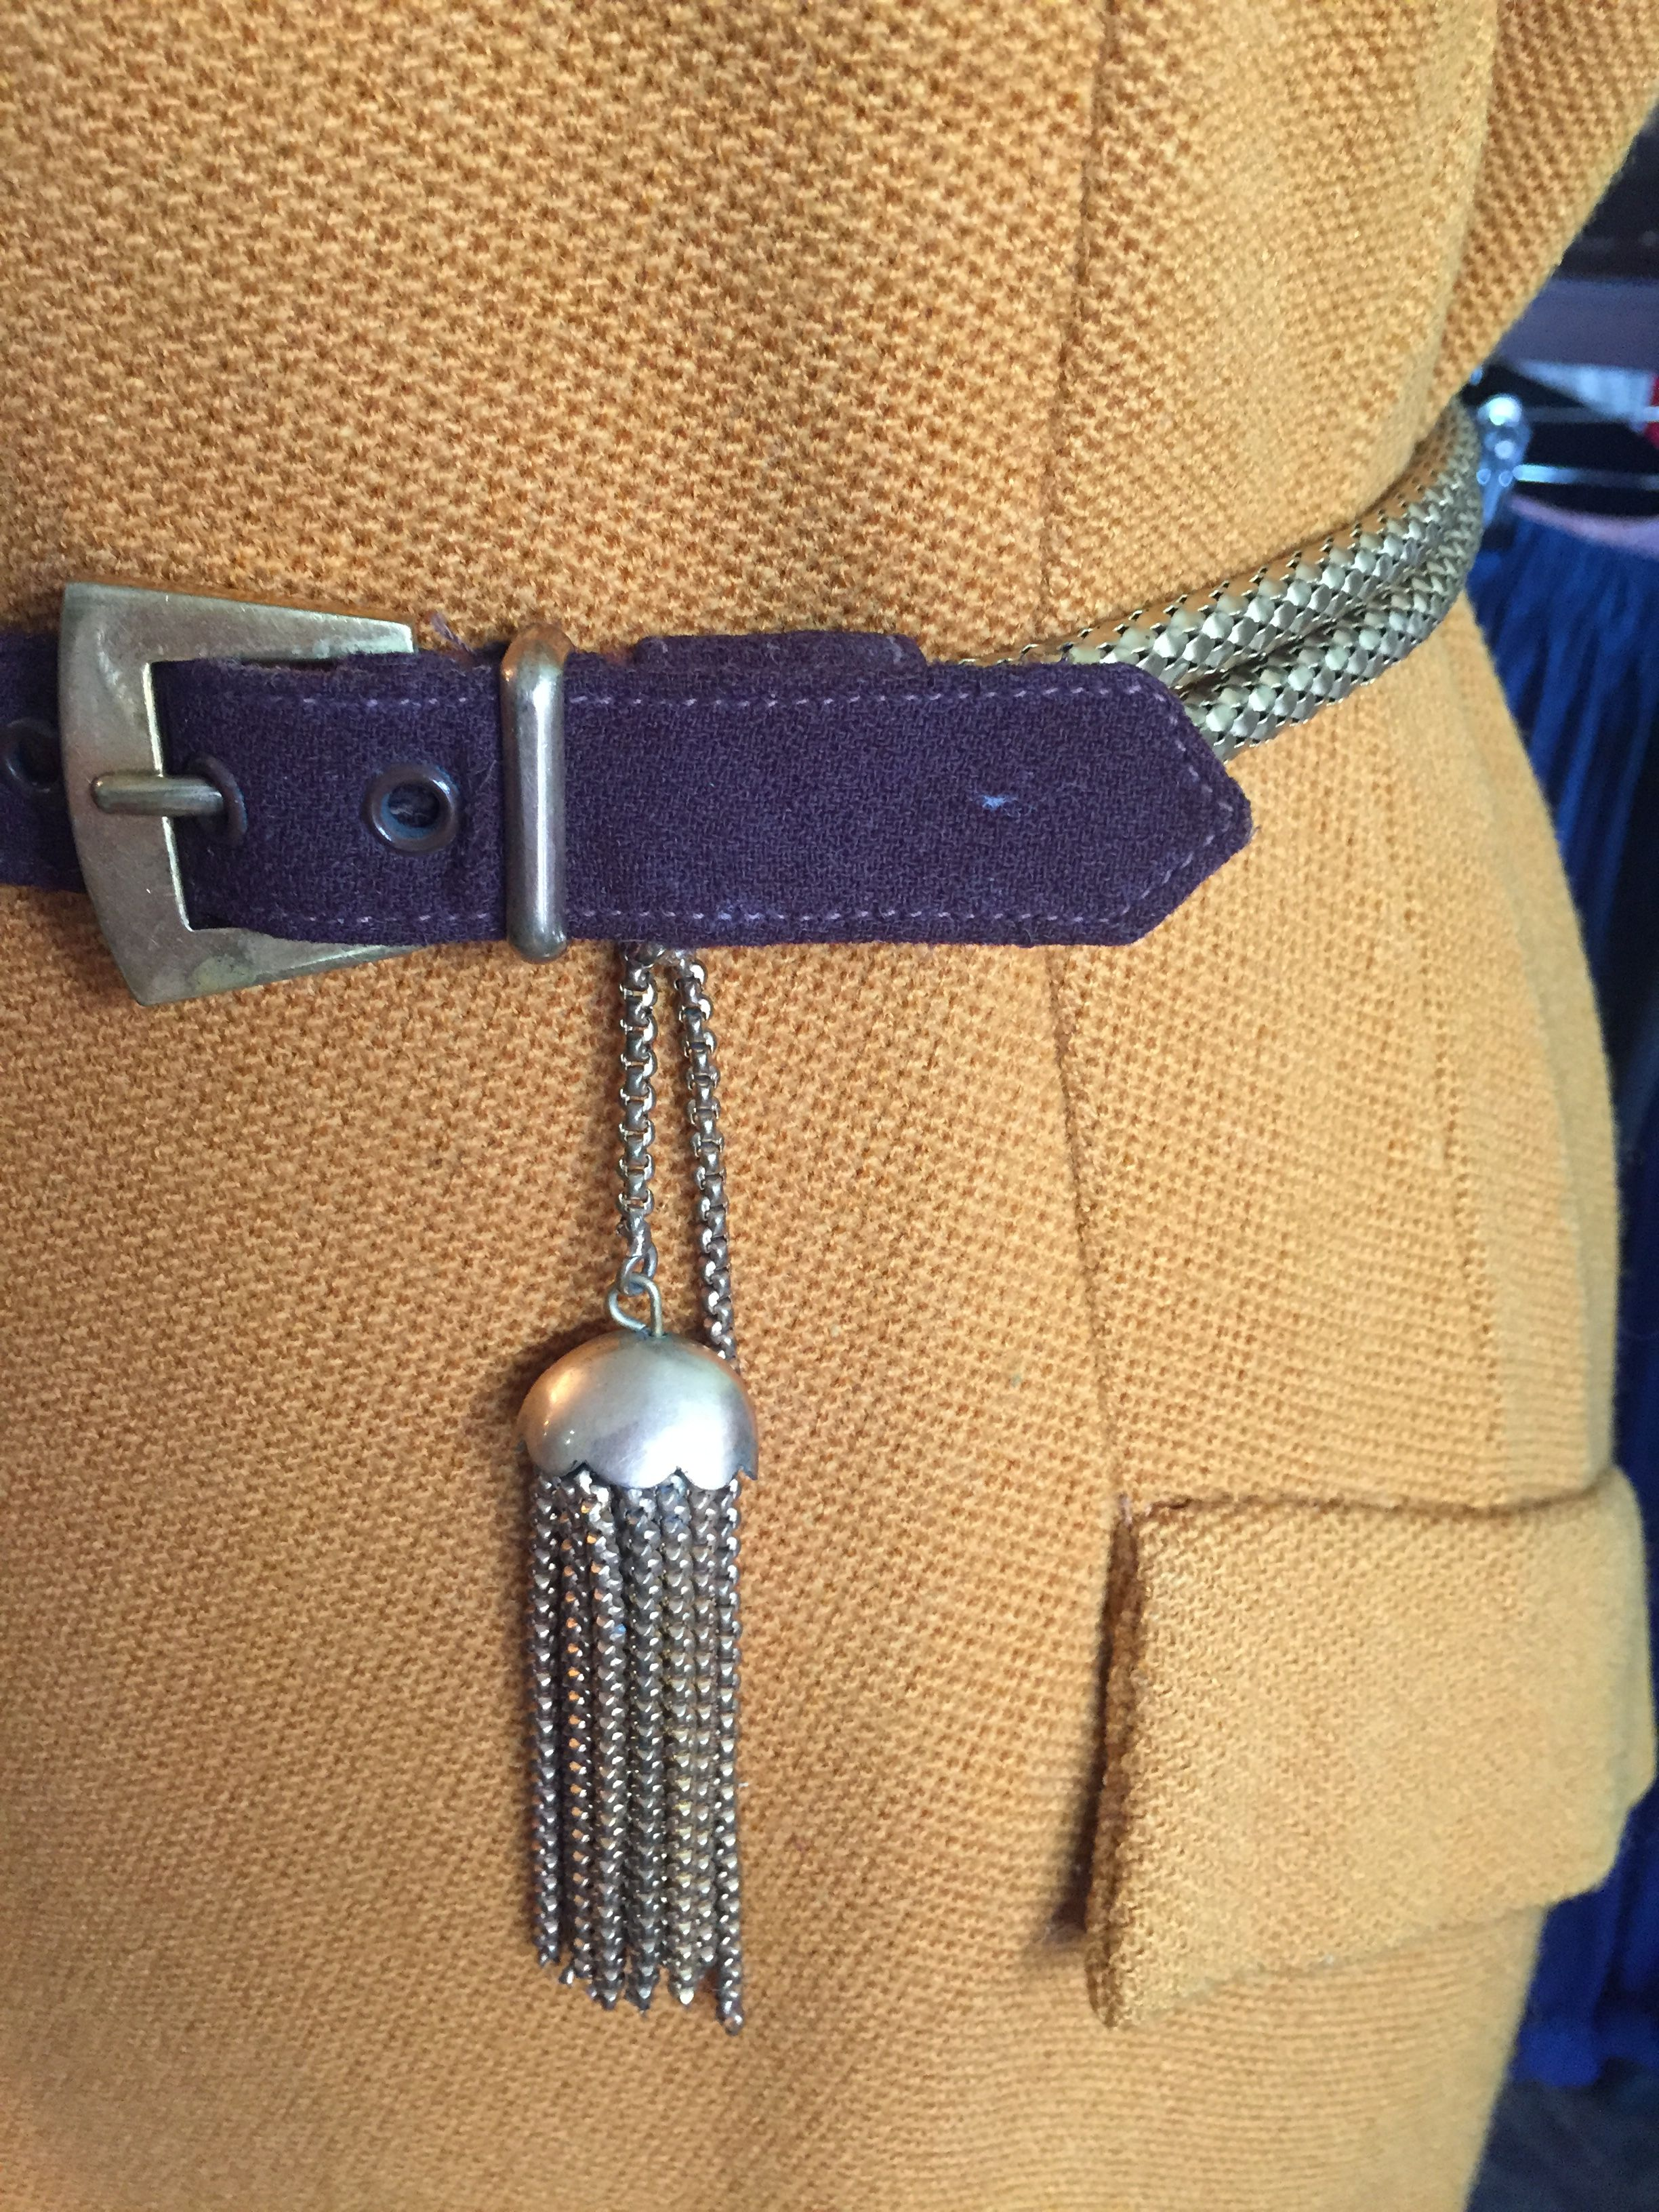 To Die For!! 1940s metal tassel belt with dual snake link length and brown suede fastening piece. Really lovely. Guide size 8-10.  £70 incl. p&p.